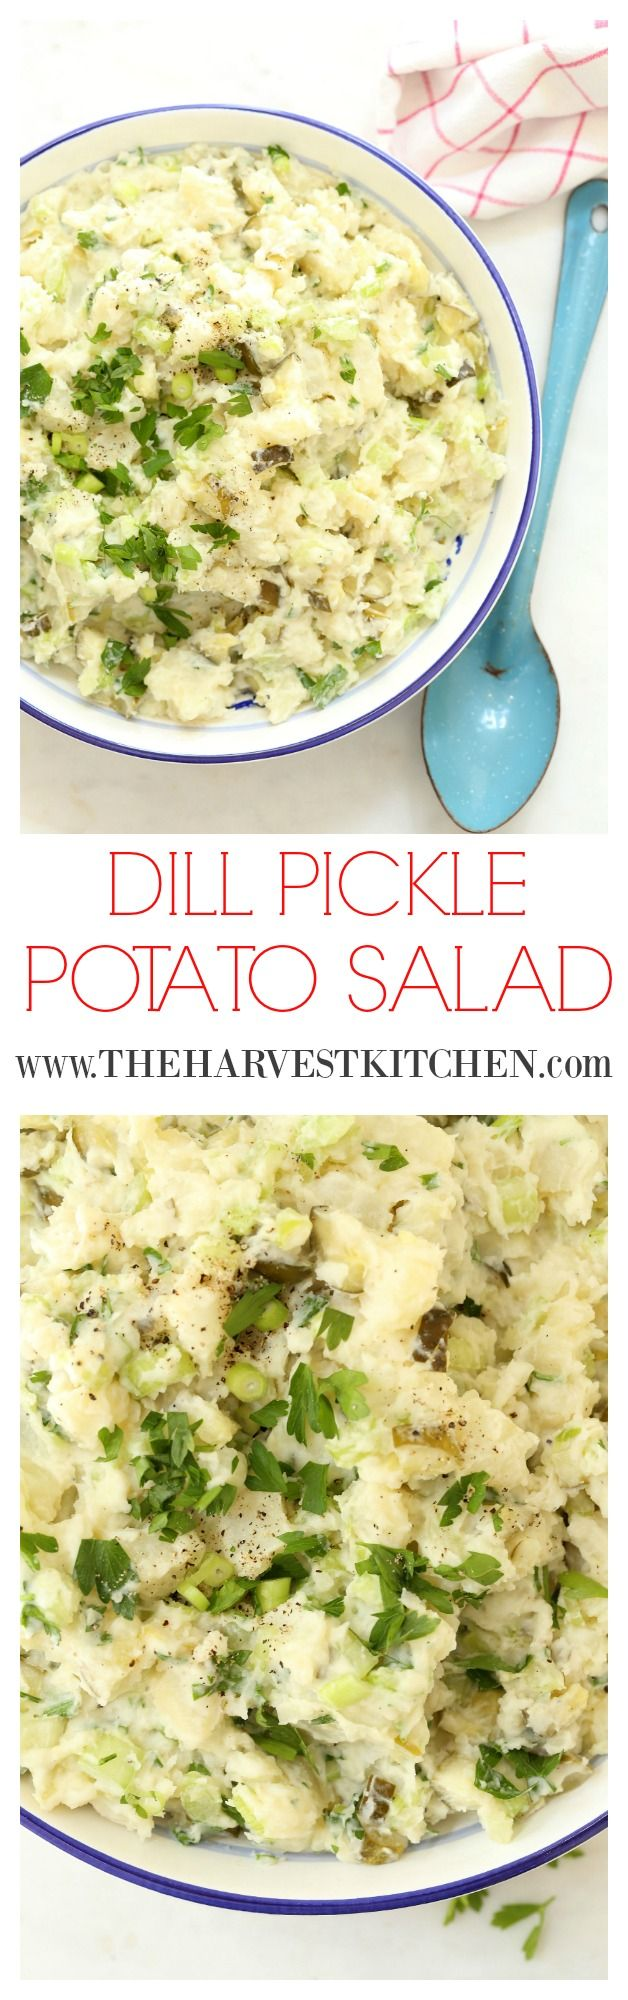 This creamy Dill Pickle Potato Salad is made with potatoes, celery, green onion…